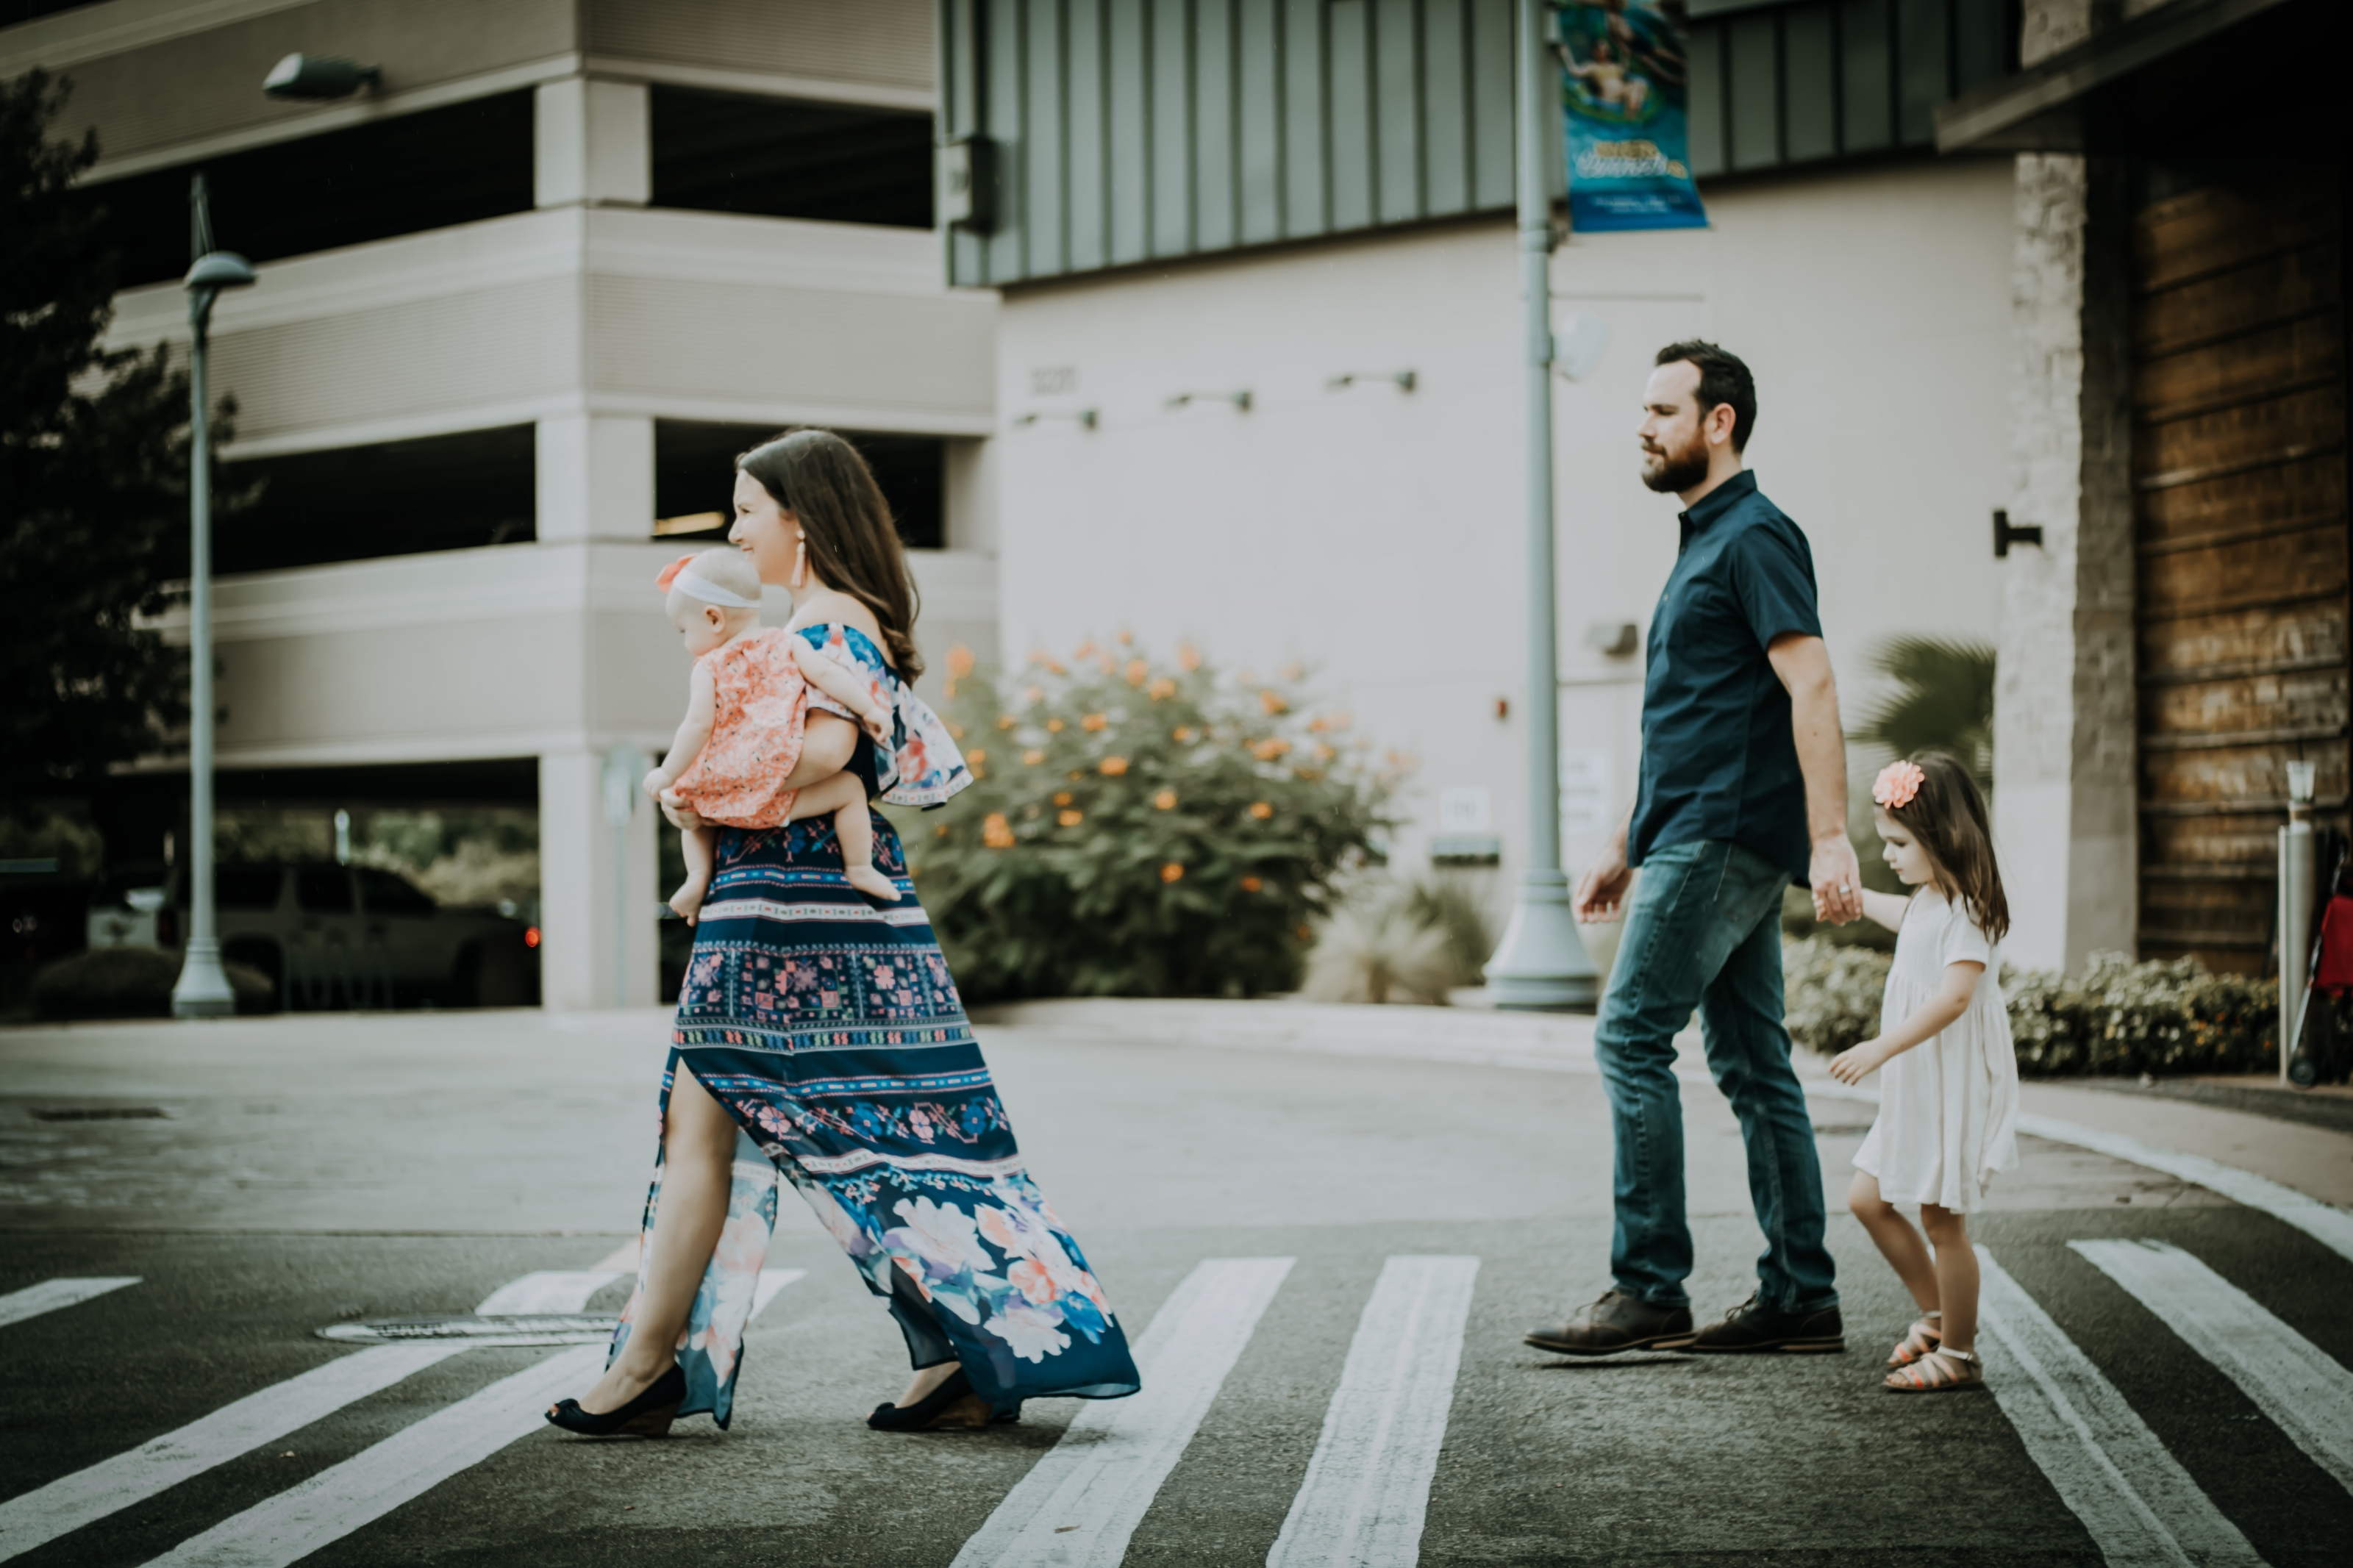 5 Character-Building Habits to Start as a Family Right Now